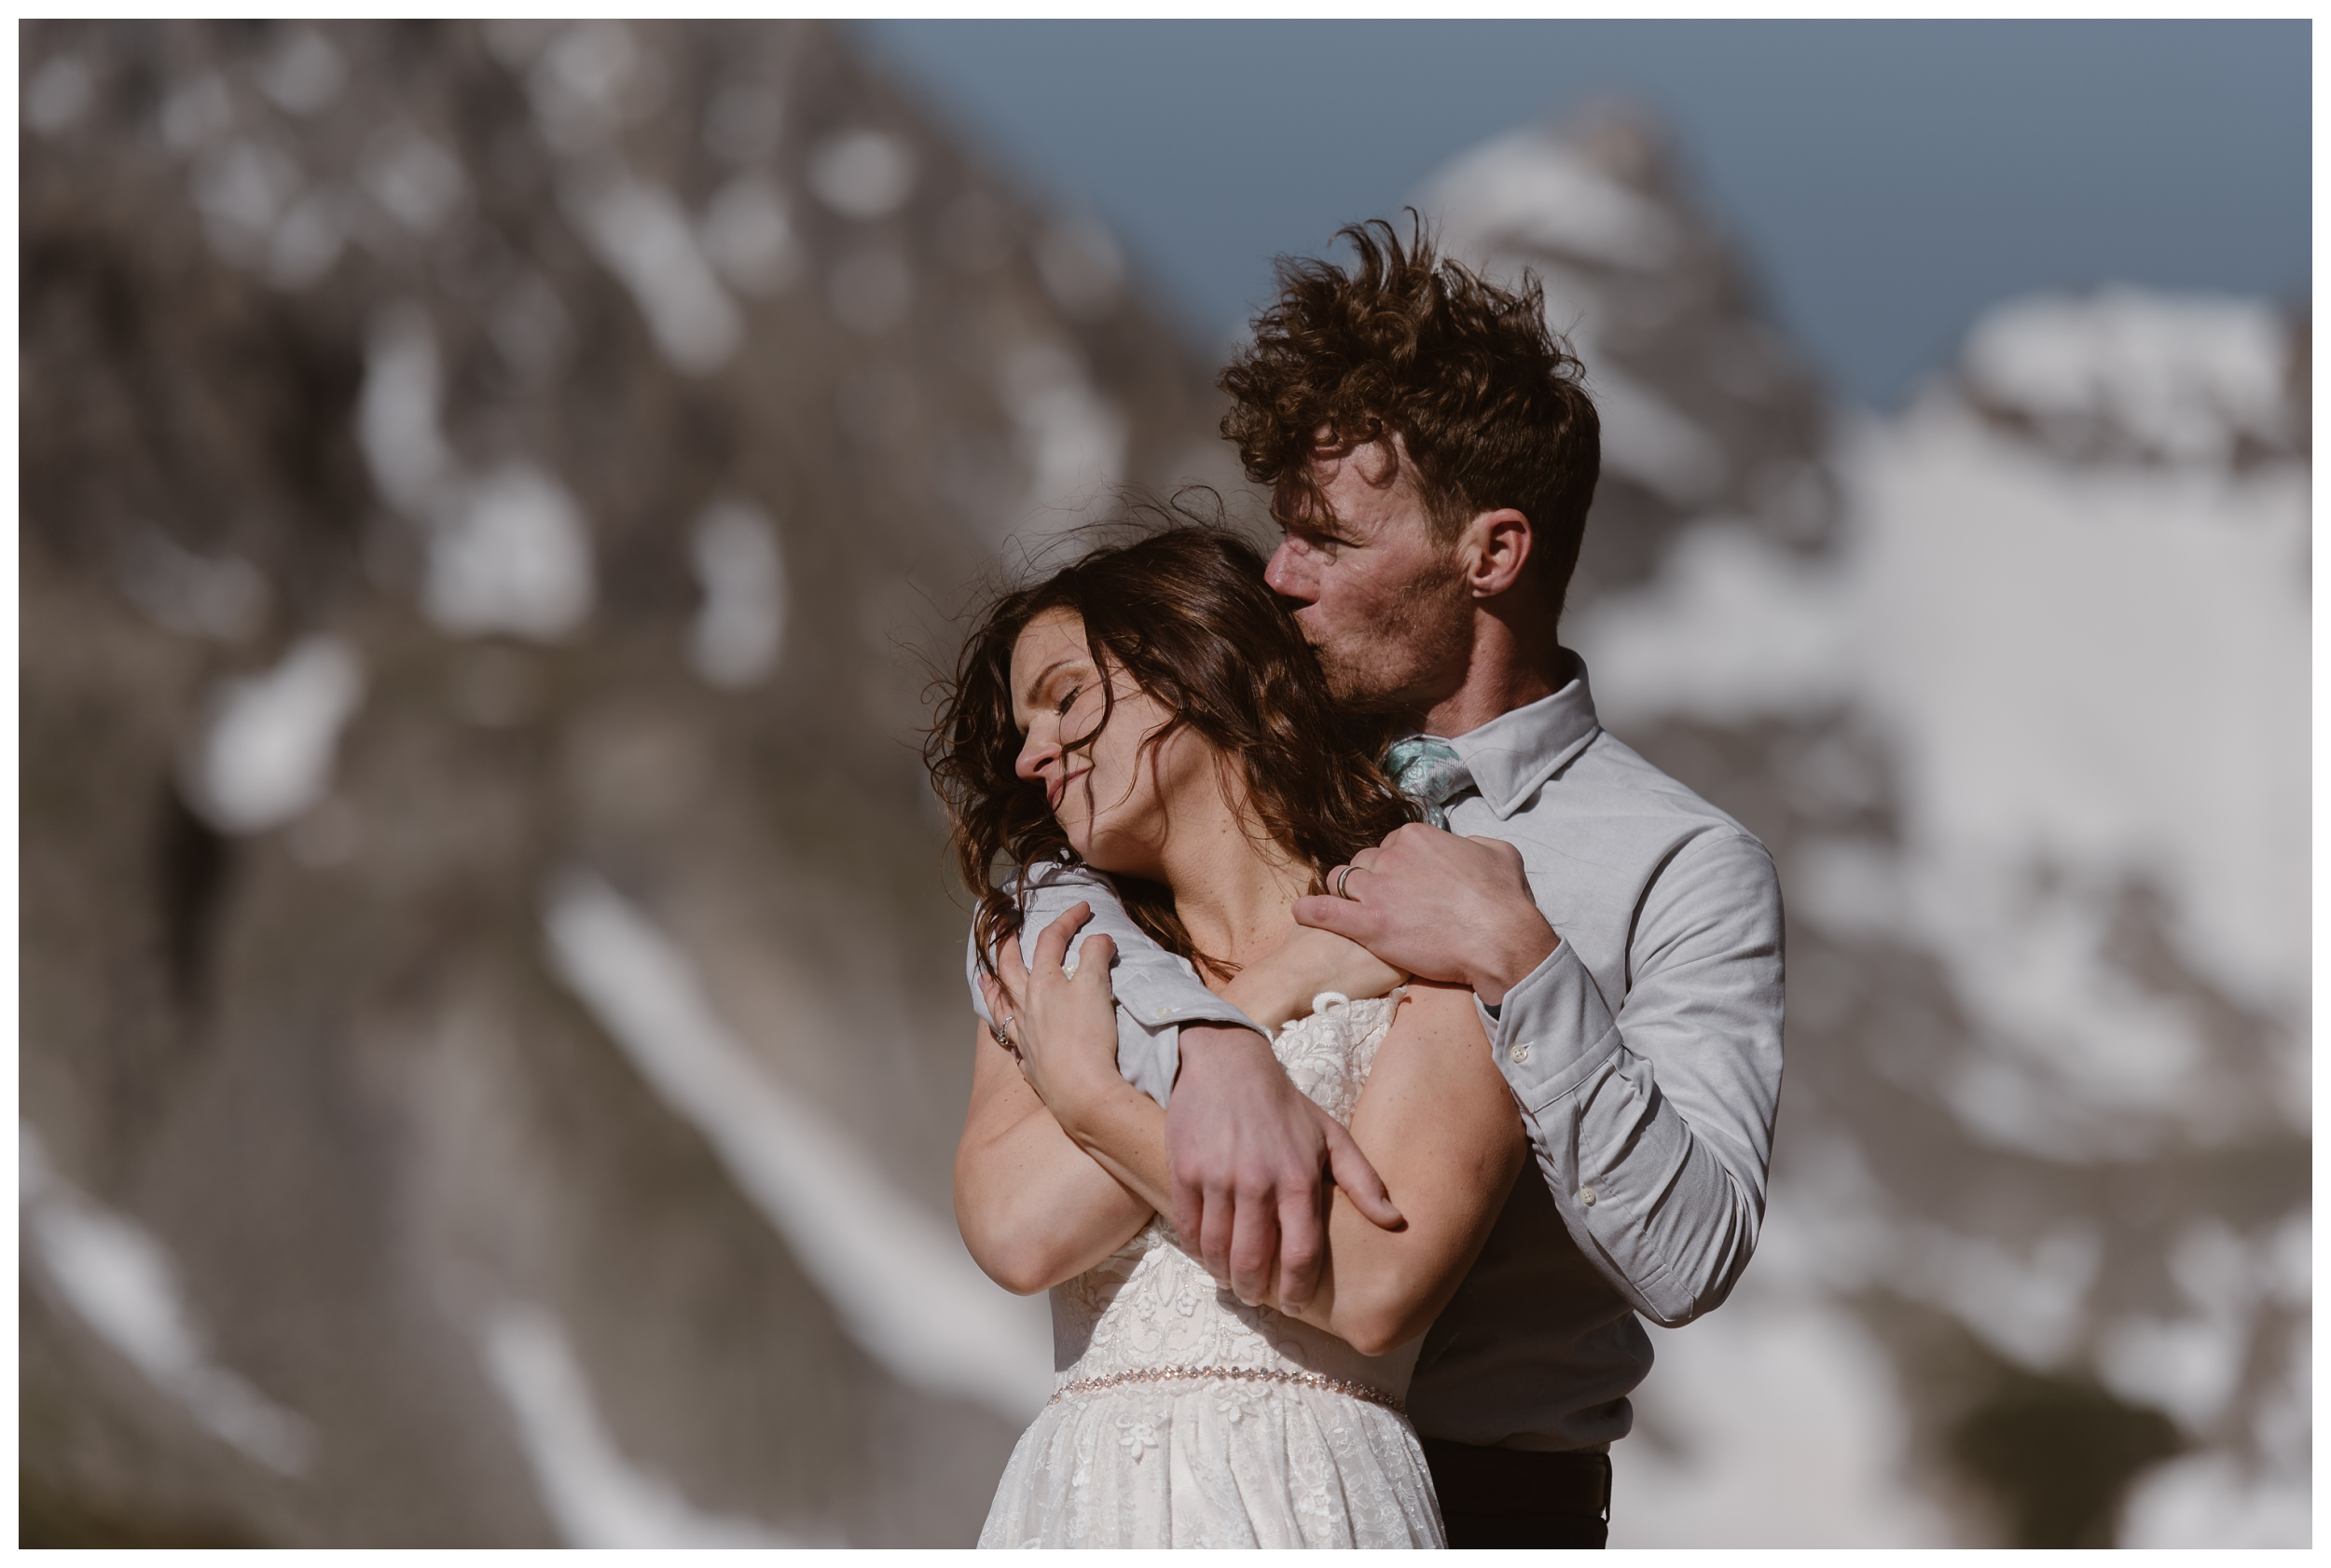 Karen and Matt embrace at the top of Lake Isabelle following their adventure elopement ceremony. Photo by Adventure Instead, Maddie Mae.